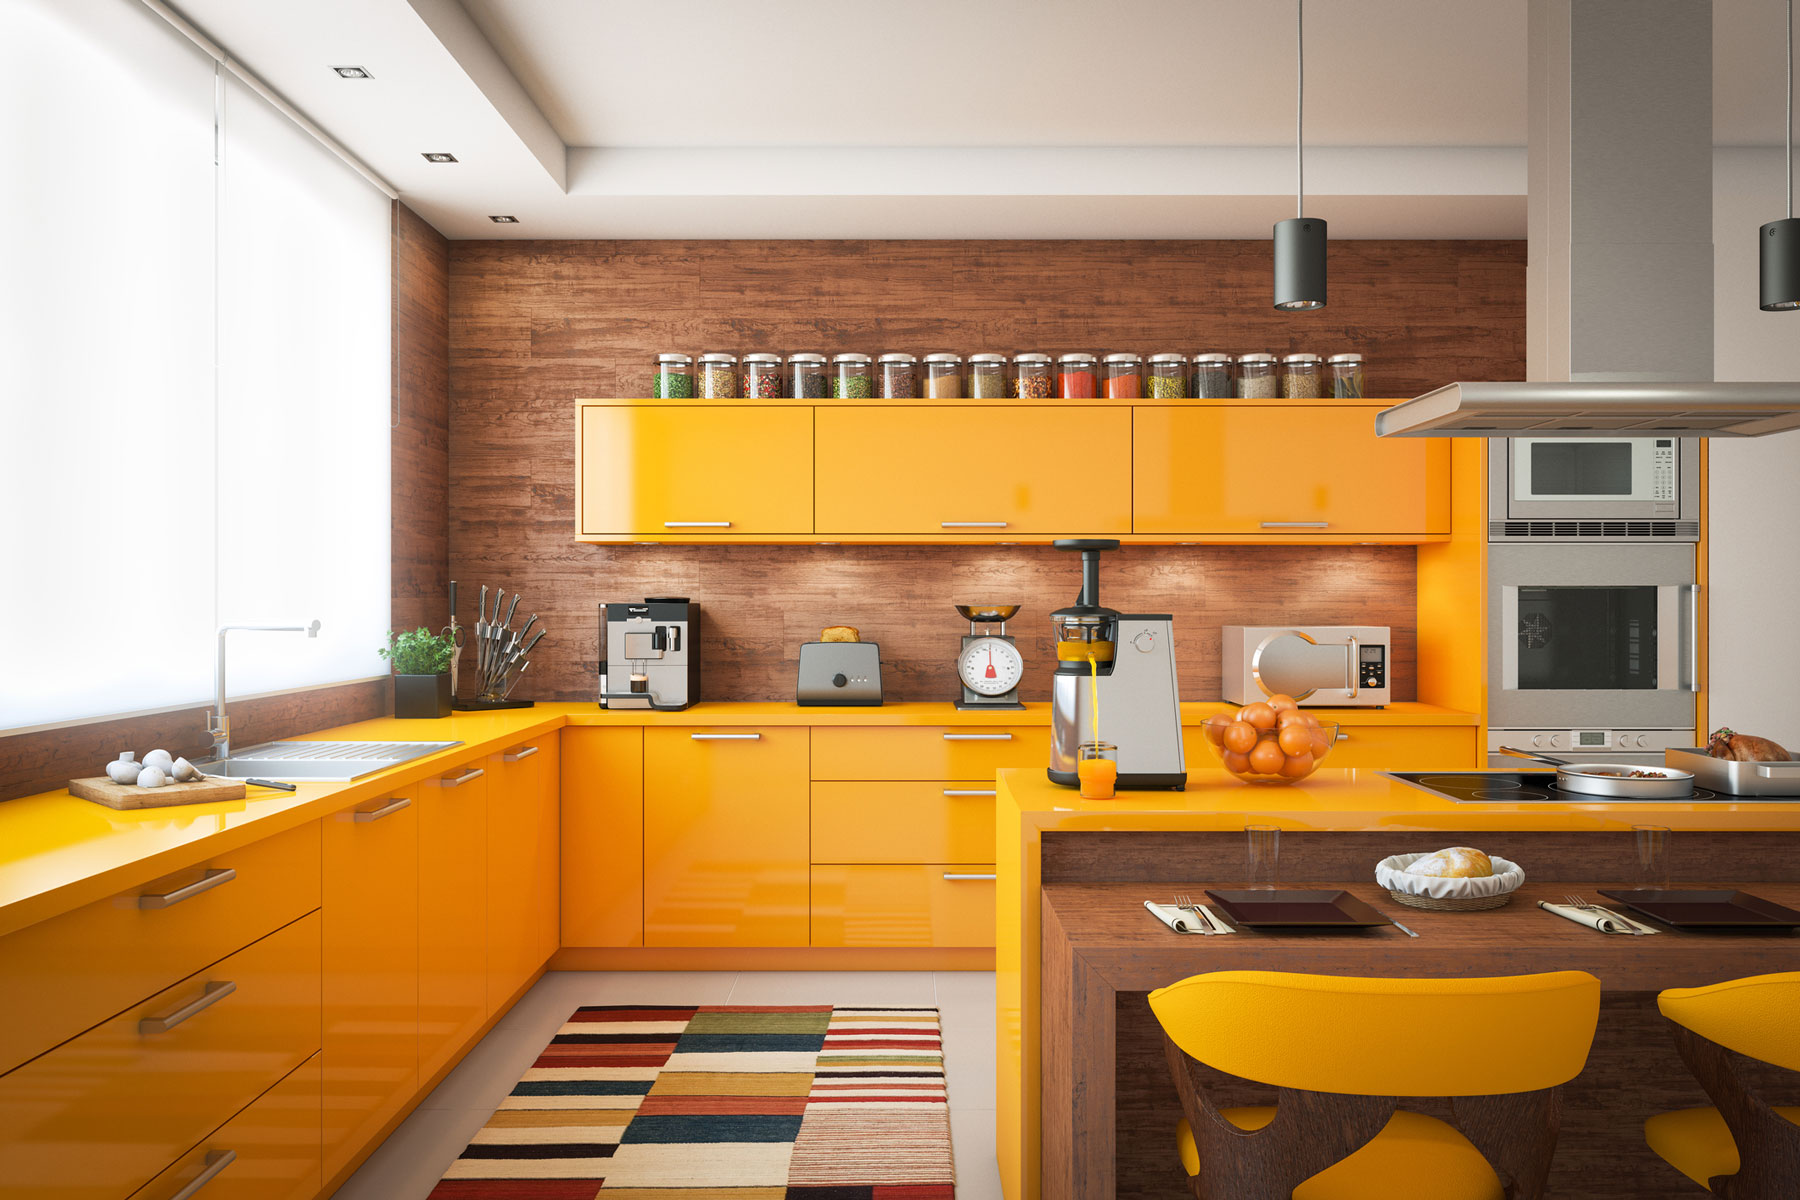 Kitchen color schemes: Colorful yellow kitchen